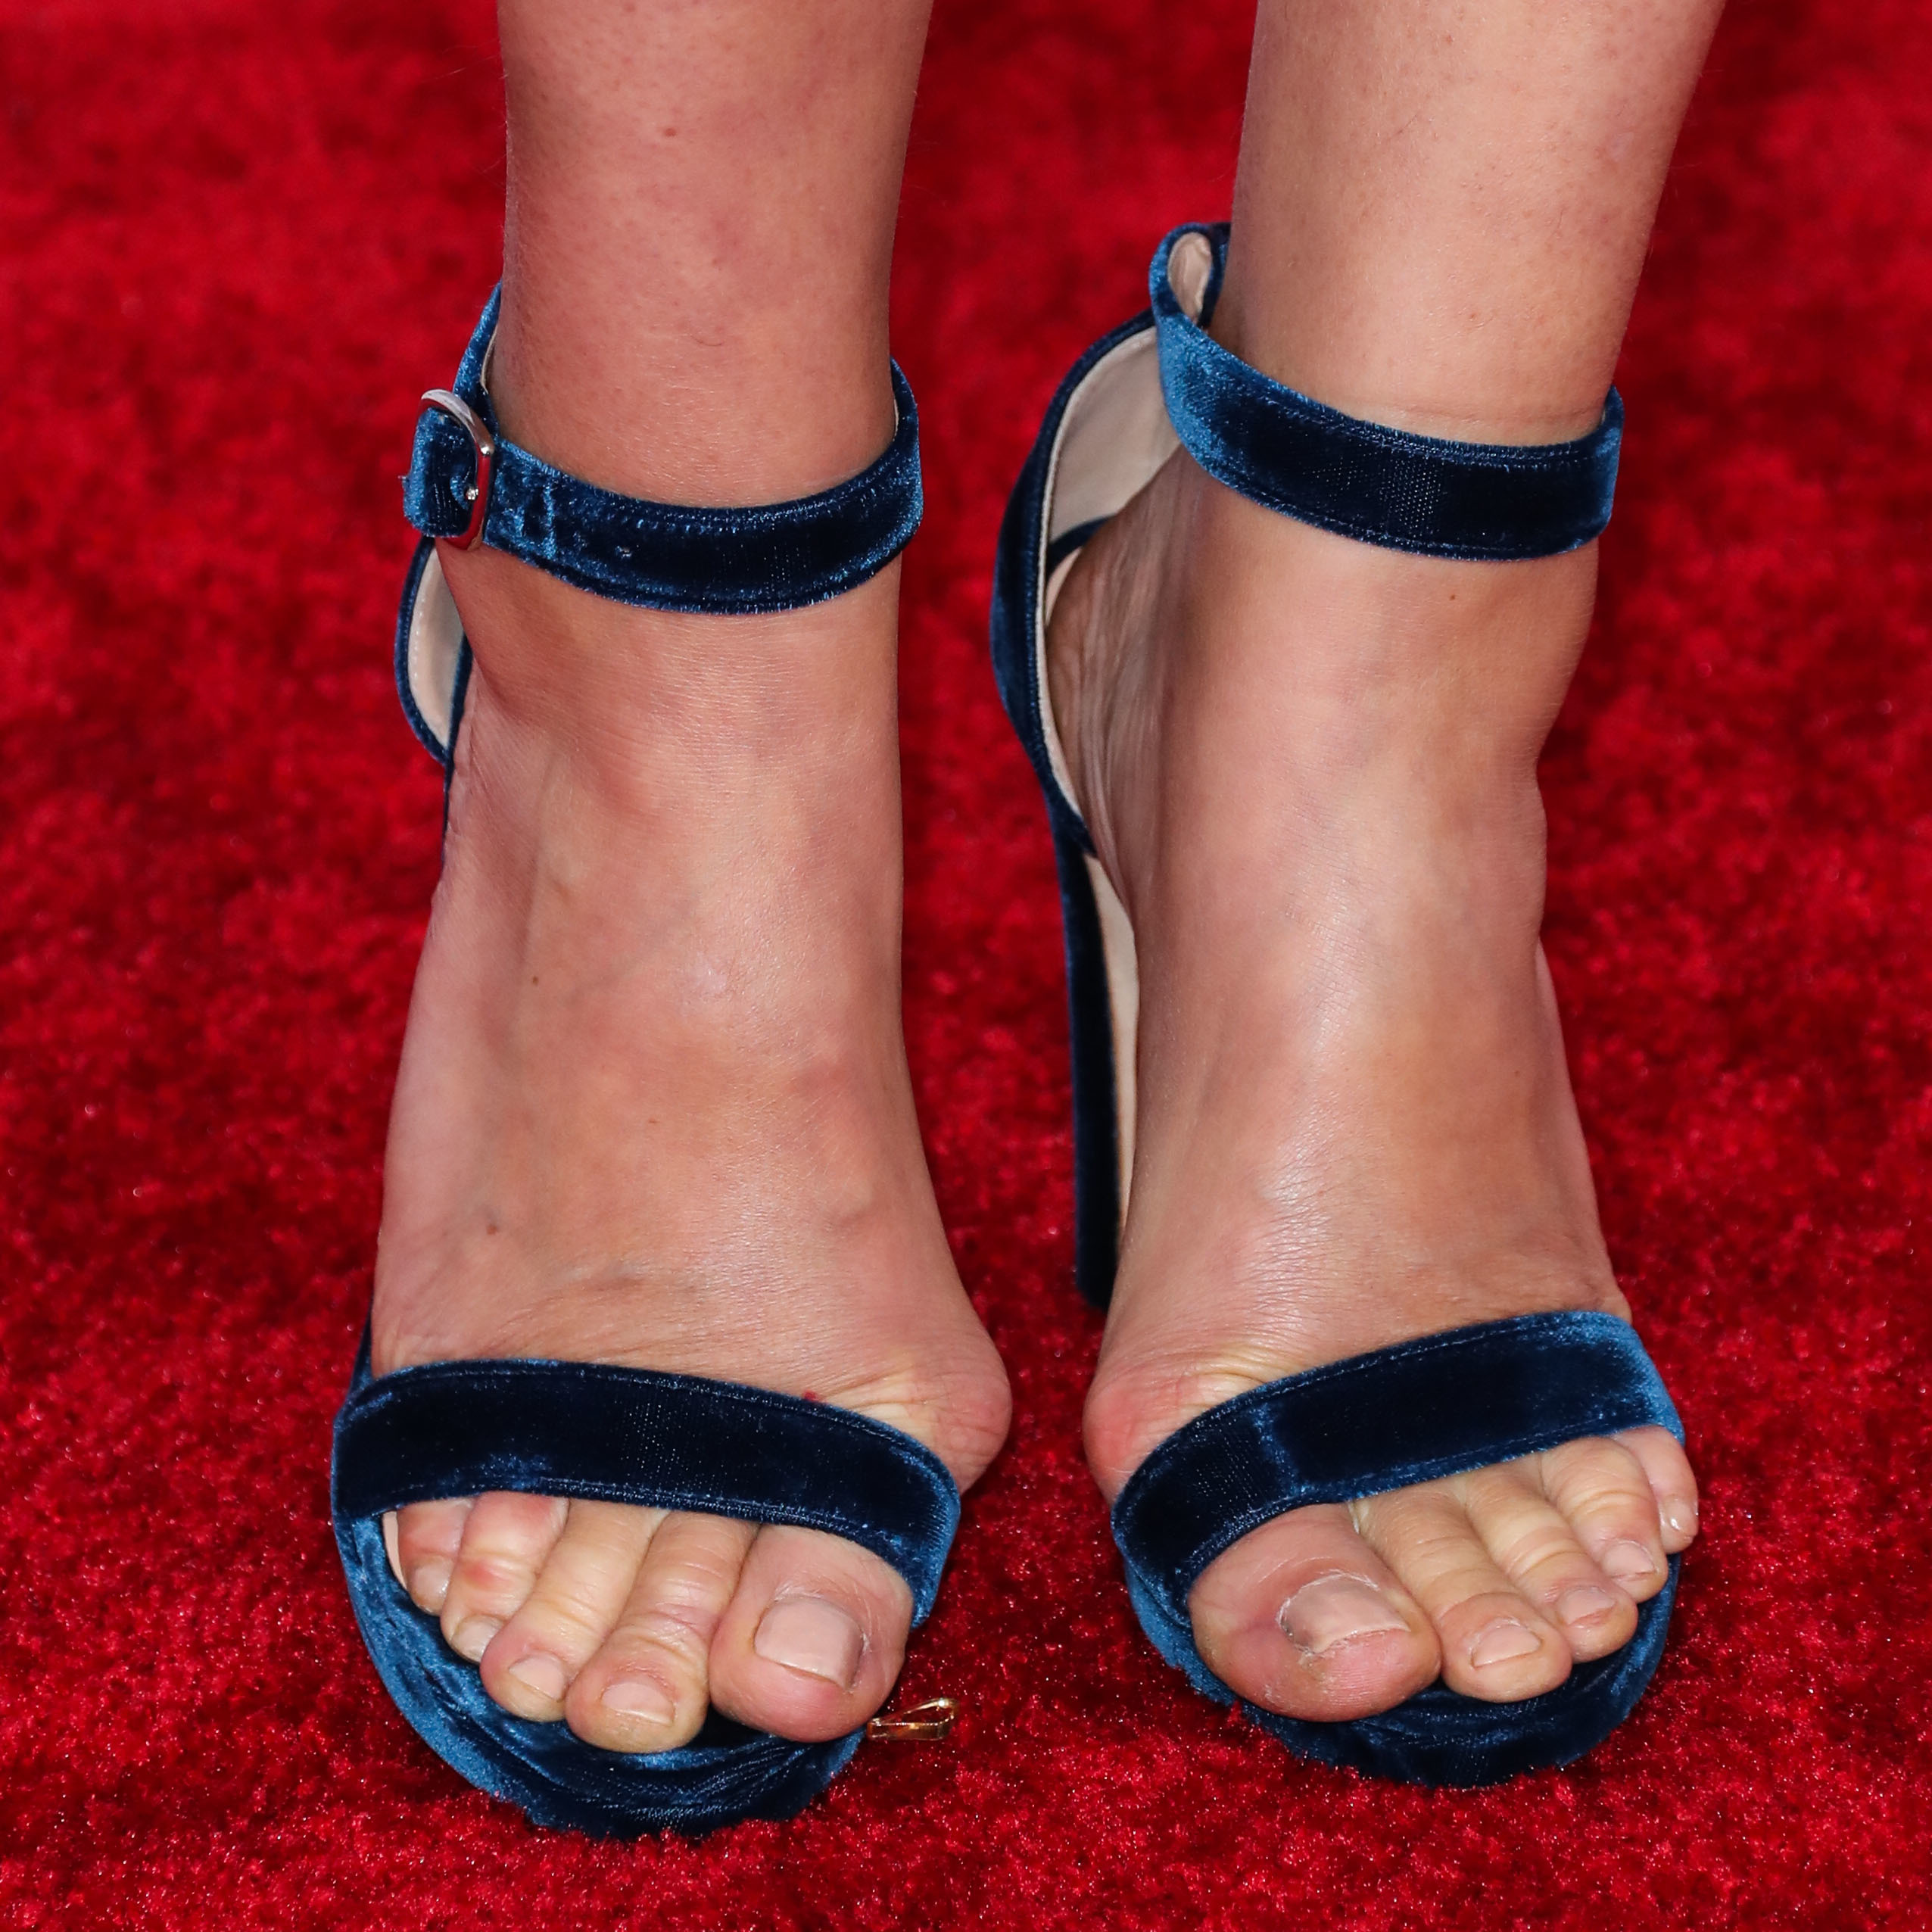 Feet Cobie Smulders nudes (29 photo), Pussy, Fappening, Instagram, braless 2015